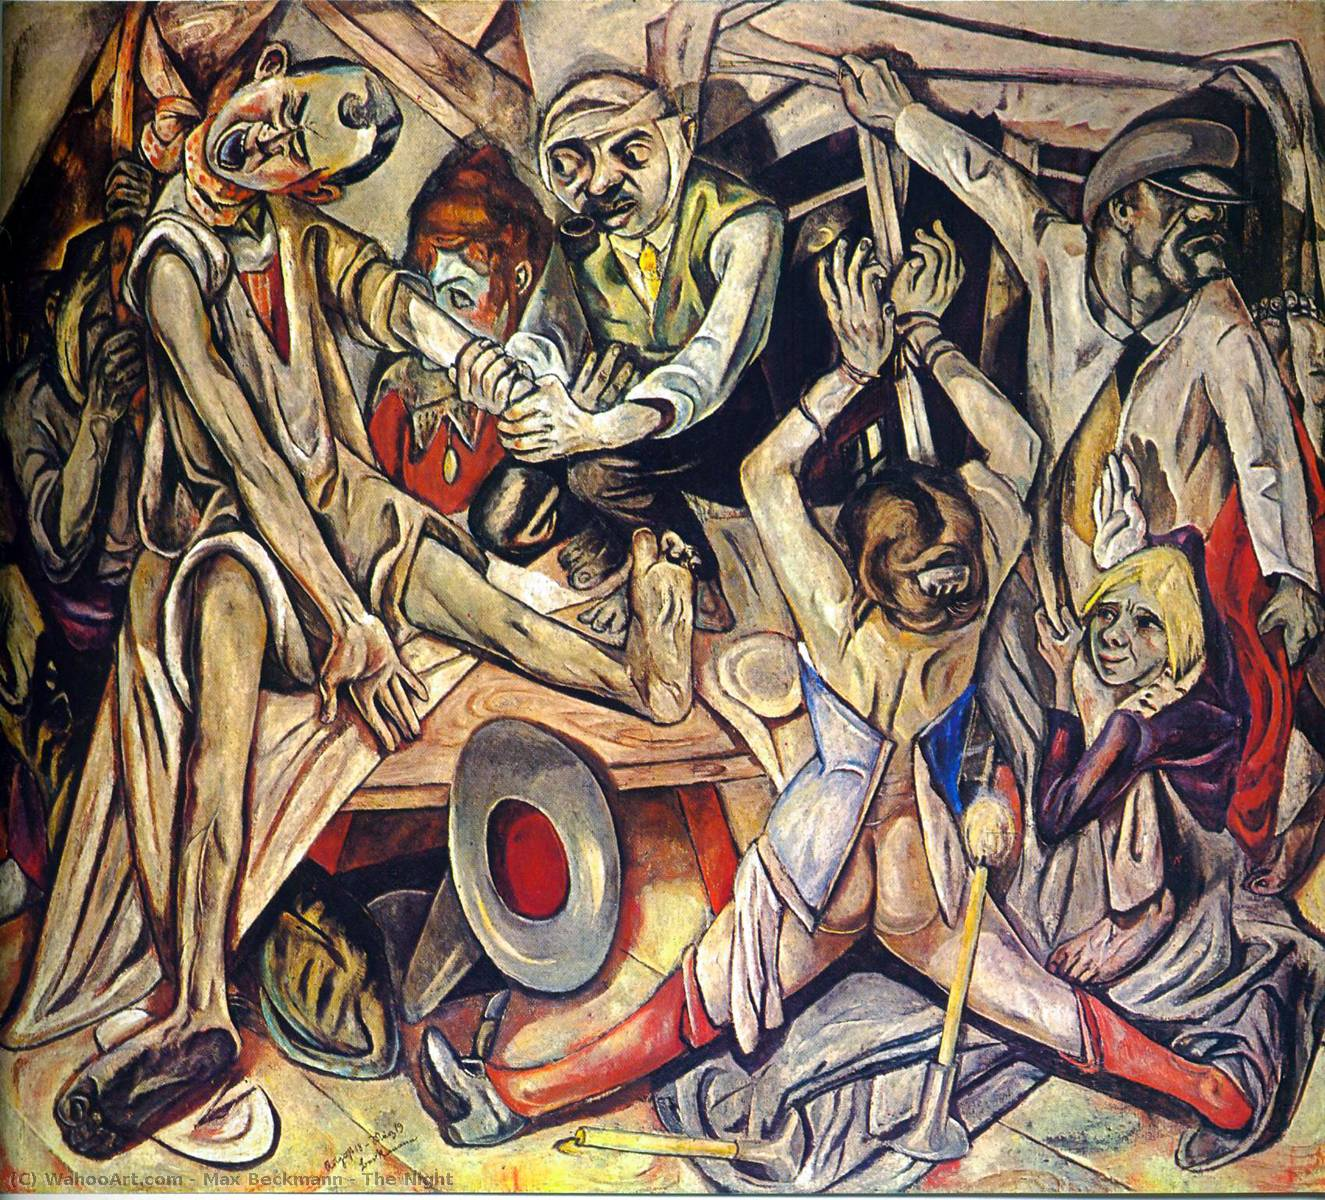 Order Museum Quality Copies | The Night by Max Beckmann | Most-Famous-Paintings.com